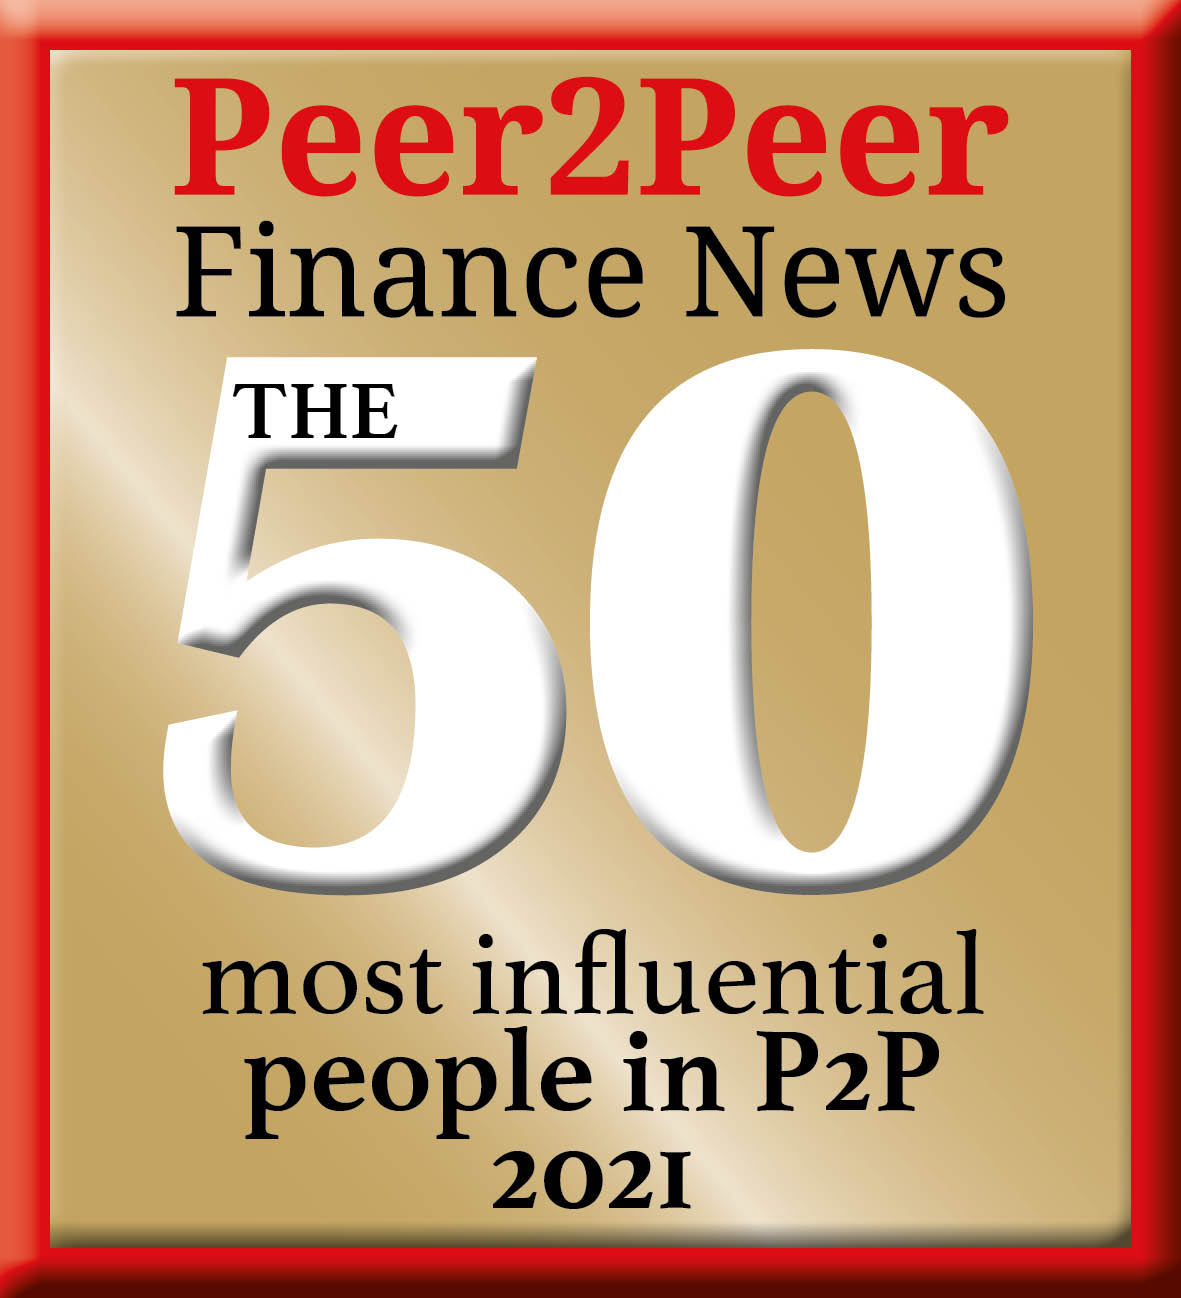 CapitalRise CEO named in this year's P2PFN Power 50 list for 4th year